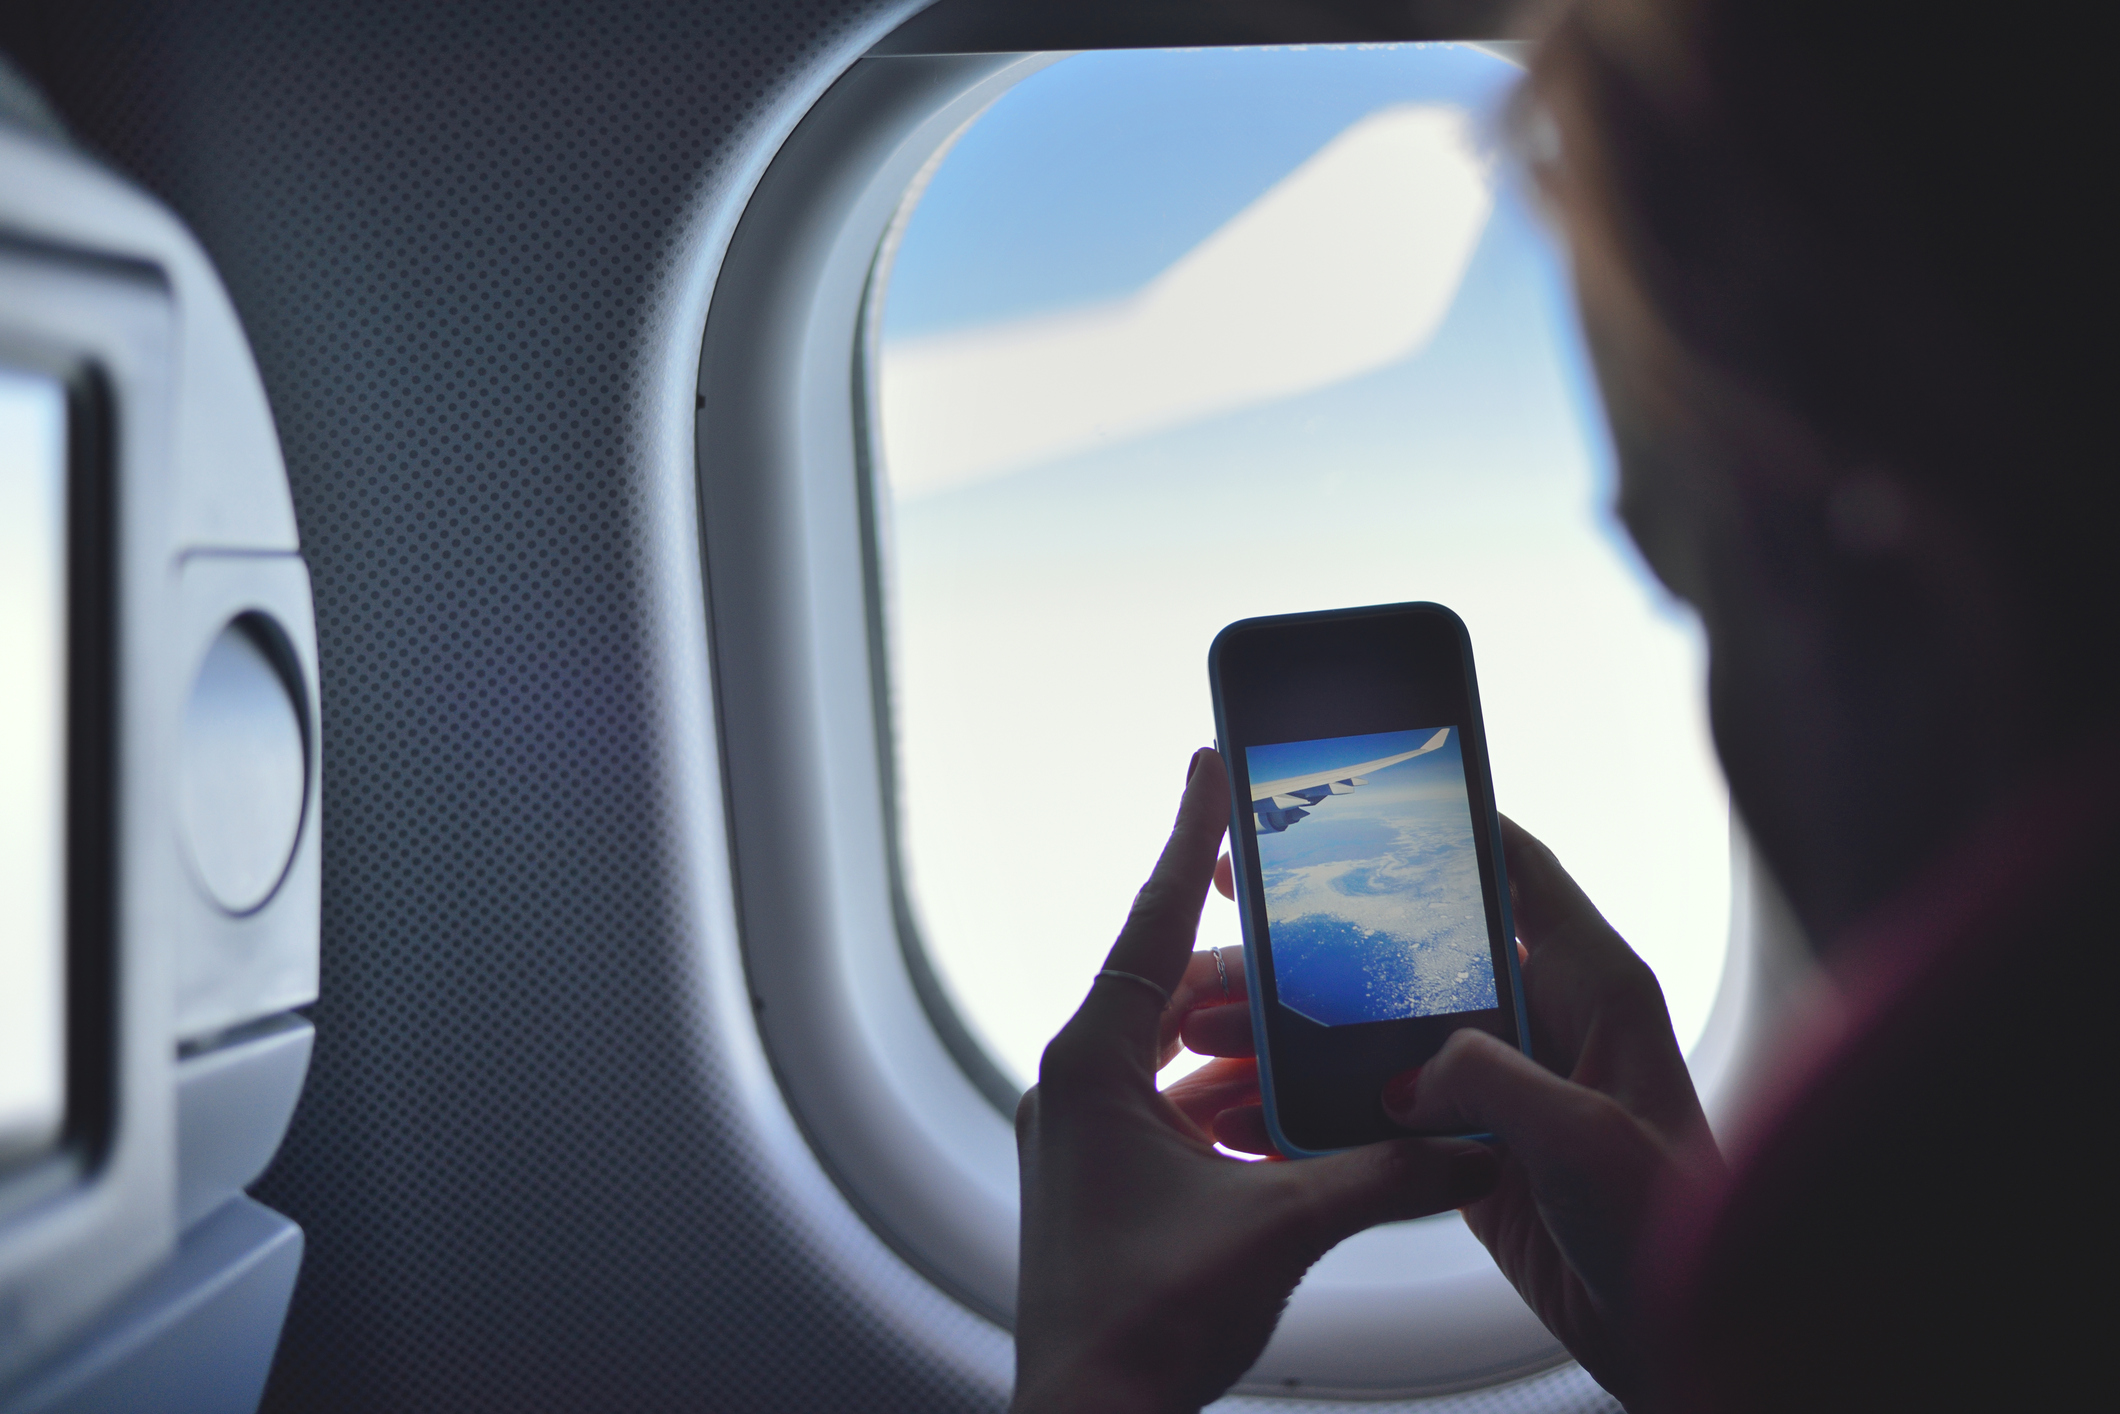 Young woman taking a picture on an airplane